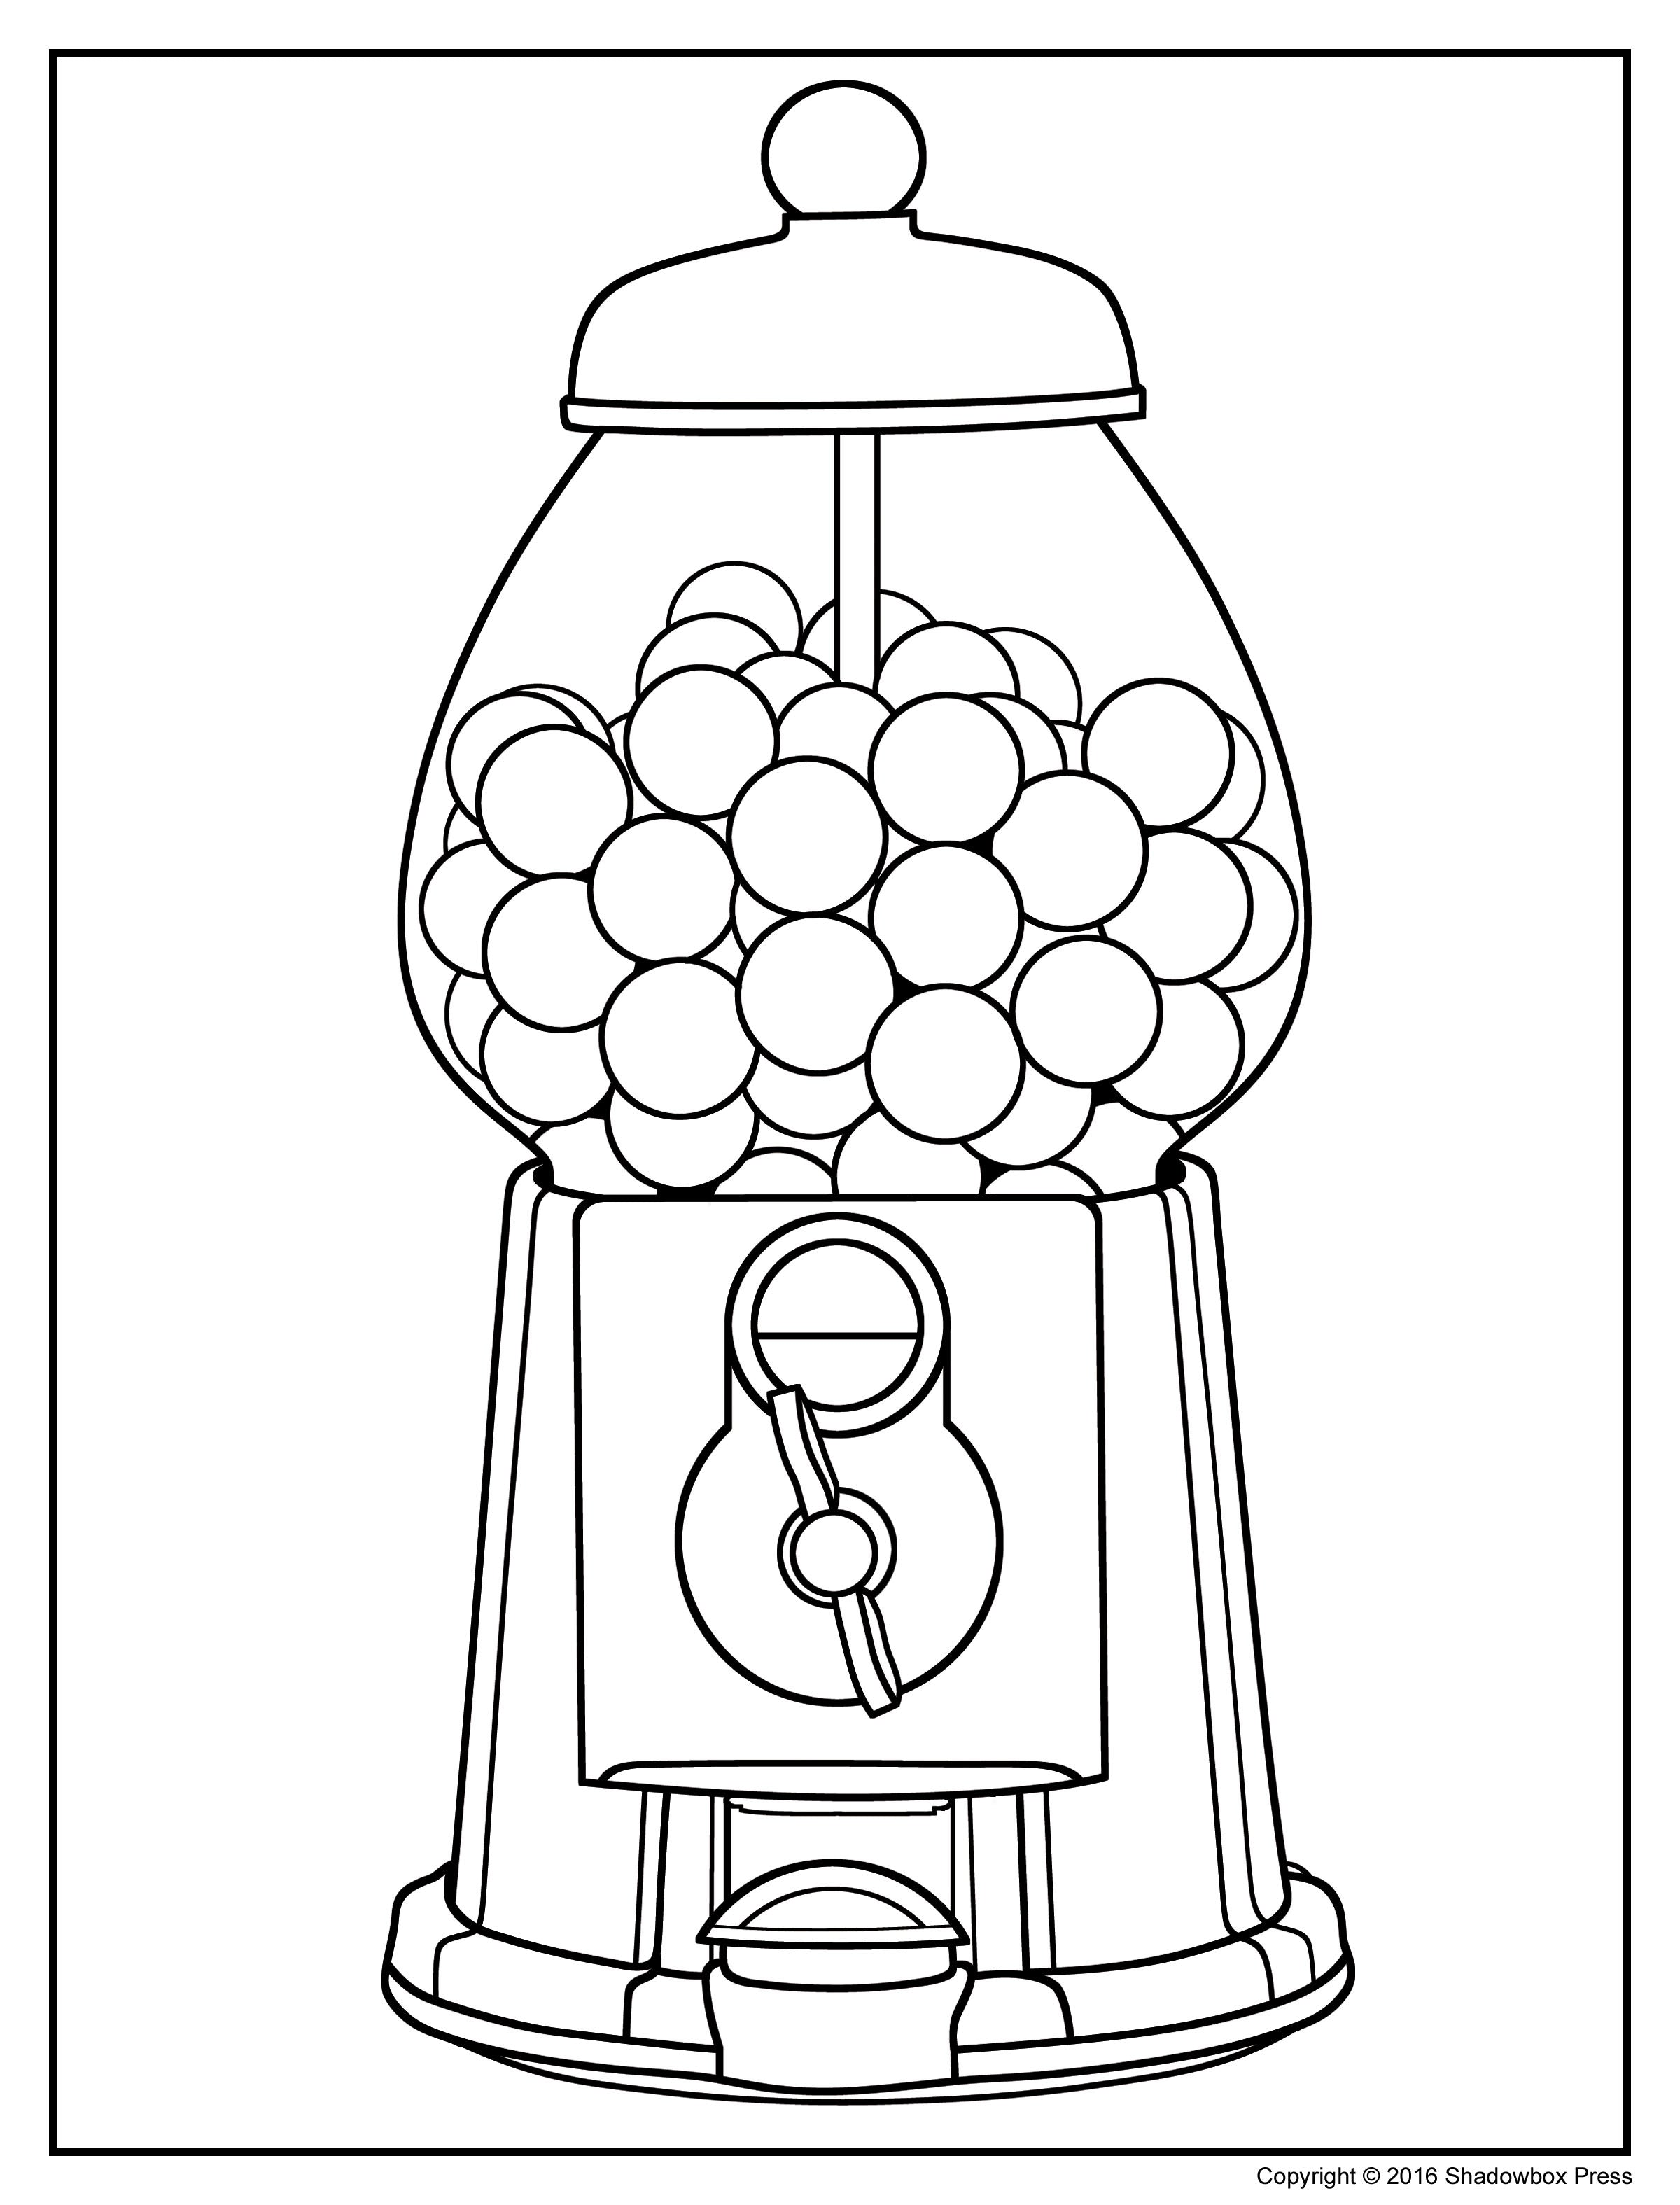 Free downloadable coloring pages for adults with dementia for Free coloring pages for adults with dementia